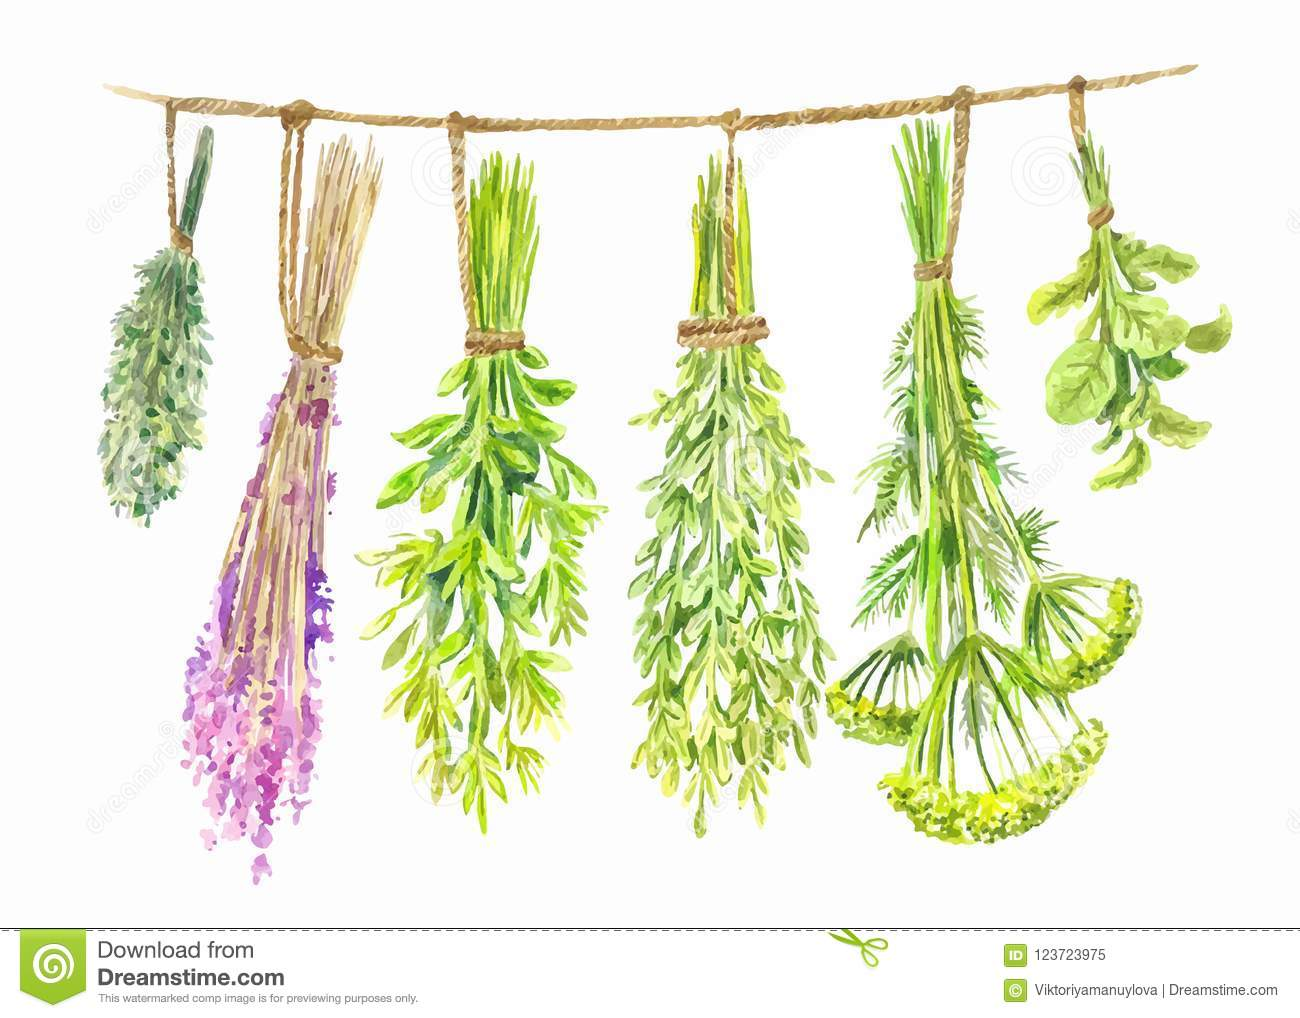 Herbs are dried on a string. Watercolor summer illustration